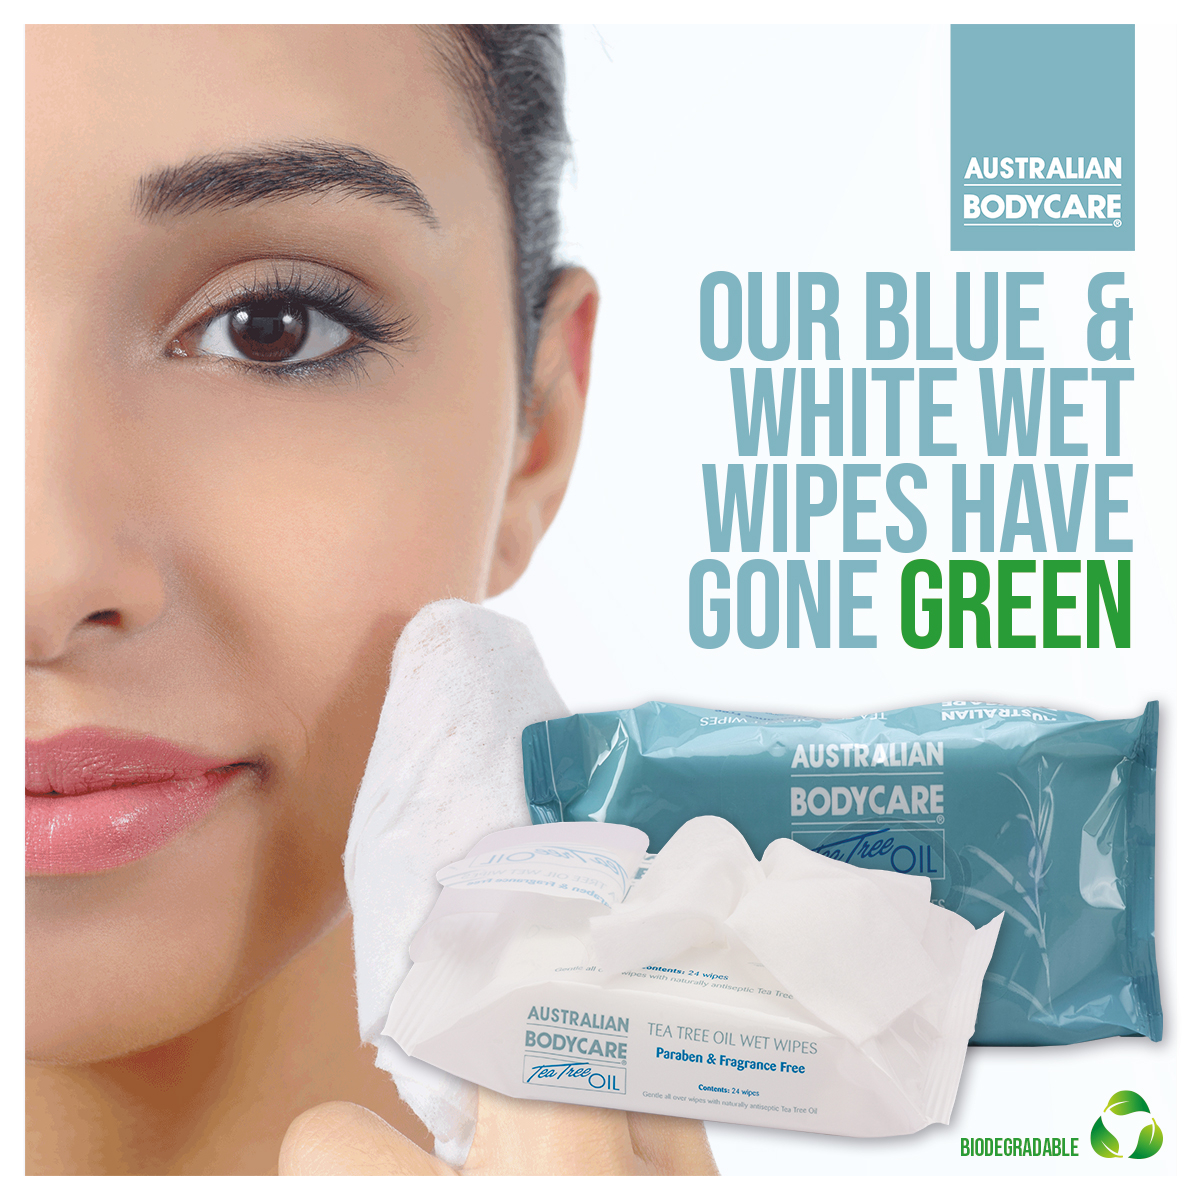 Our Tea Tree Oil infused Wet Wipes are perfect in the #salon and at #home for cleansing and hygiene. Now we've upgraded them to a biodegradable formula giving the same great performance in a more environmentally conscious way! https://soo.nr/ZuAE   #australianbodycarepic.twitter.com/TEbxUXksOq